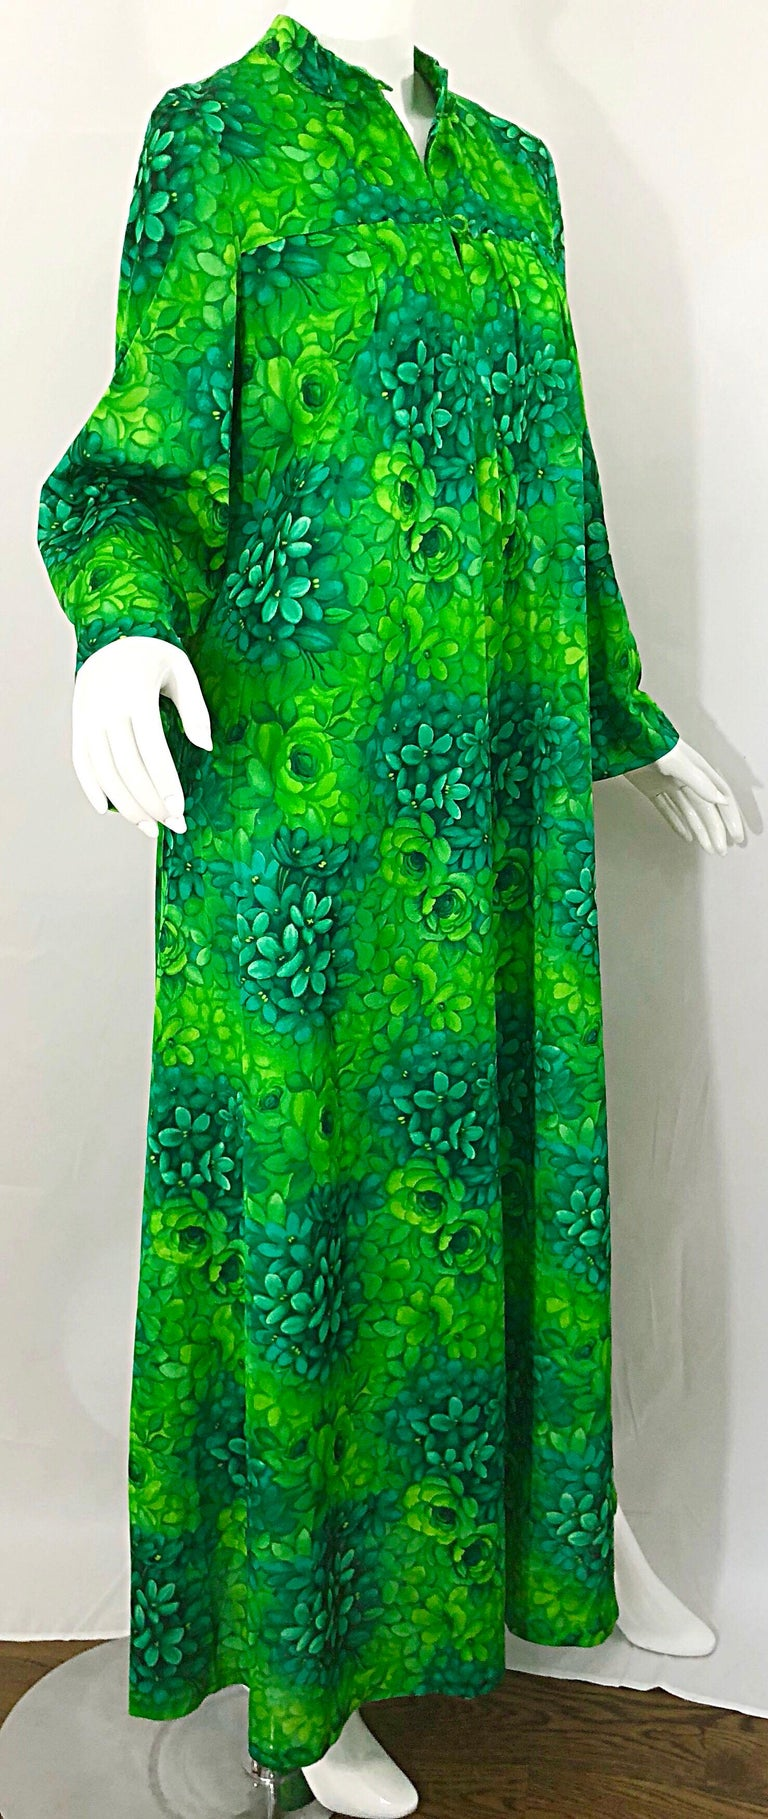 Amazing 1970s Neon + Kelly Green Abstract Flower Print 70s Vintage Caftan Dress For Sale 3